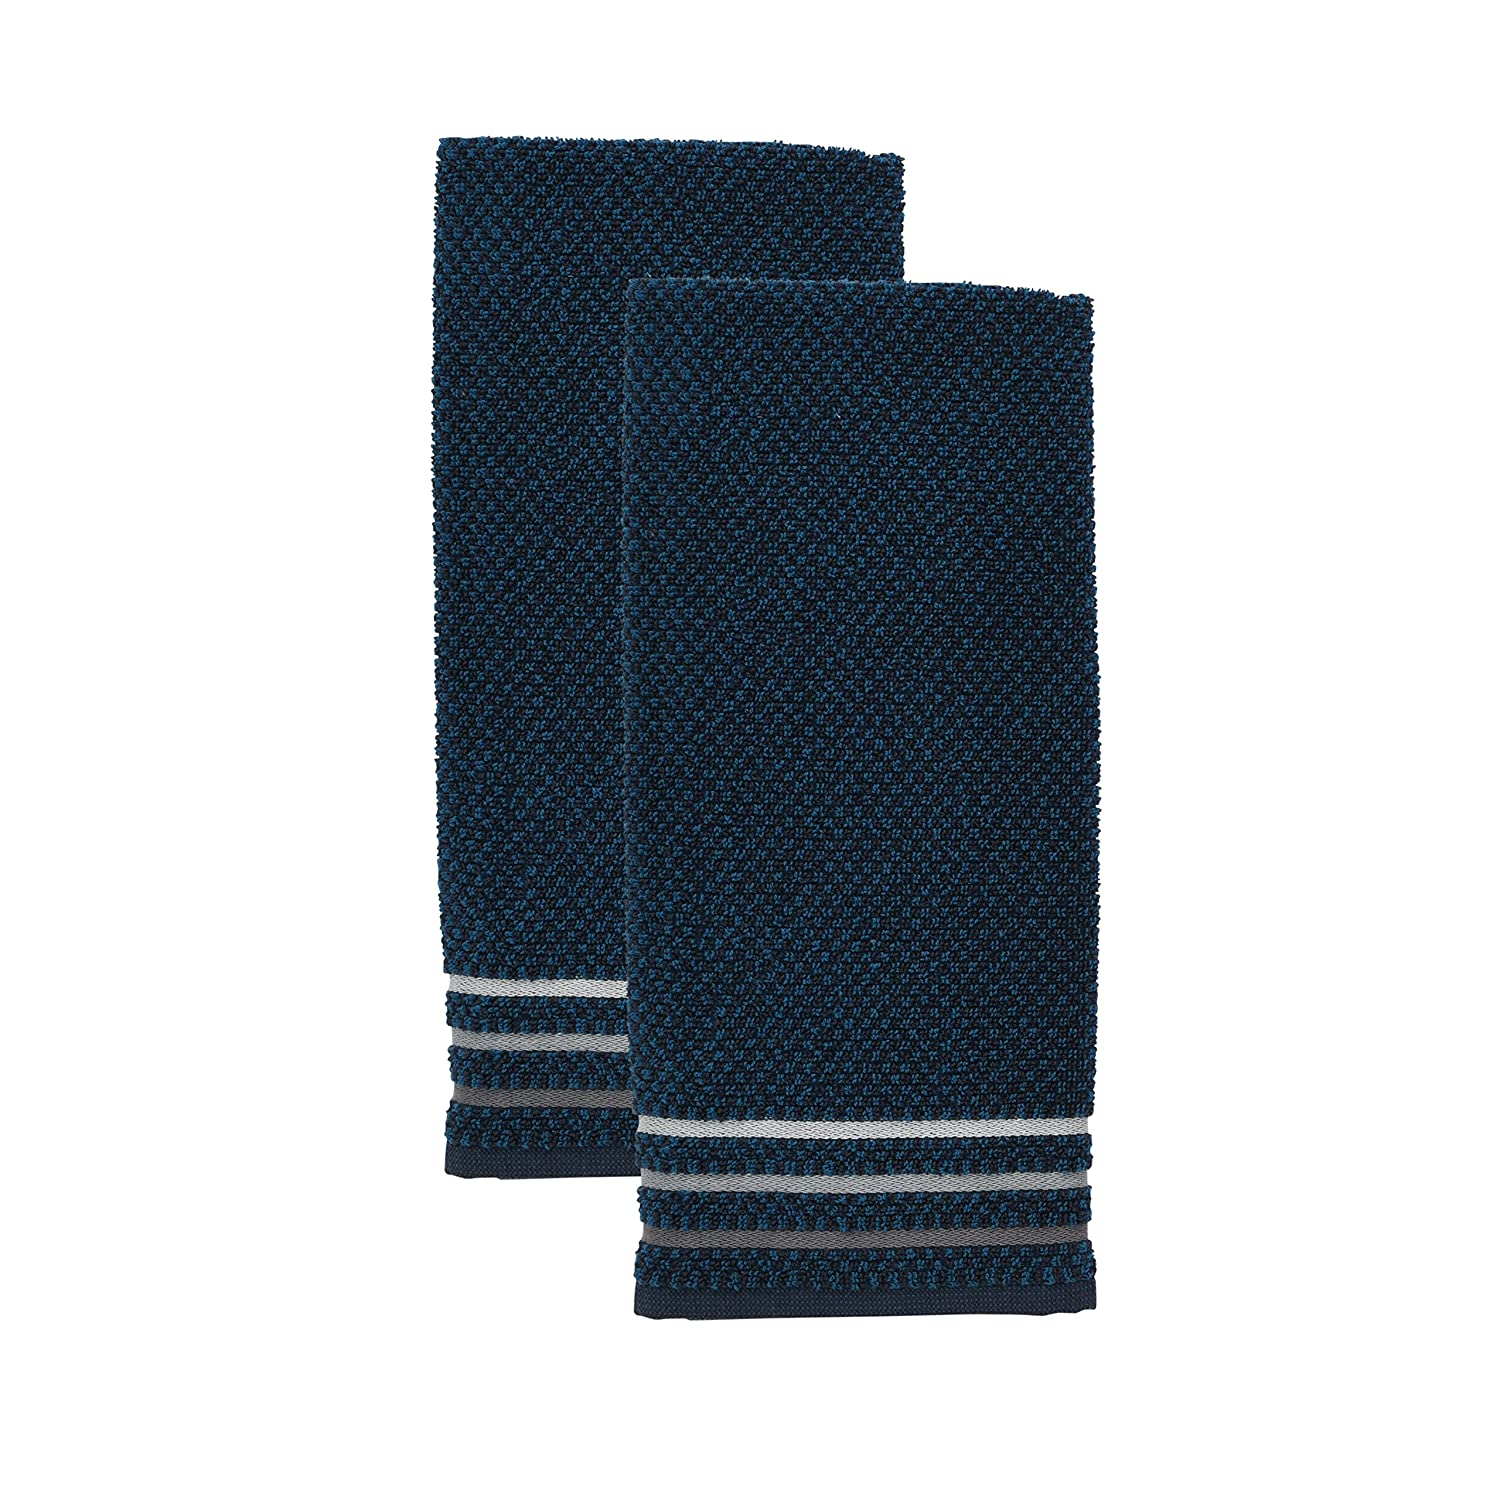 Kitchenaid Checkerboard Kitchen Towel Ink Blue TOWN /& COUNTRY LIVING 150077KT2 401 One Size